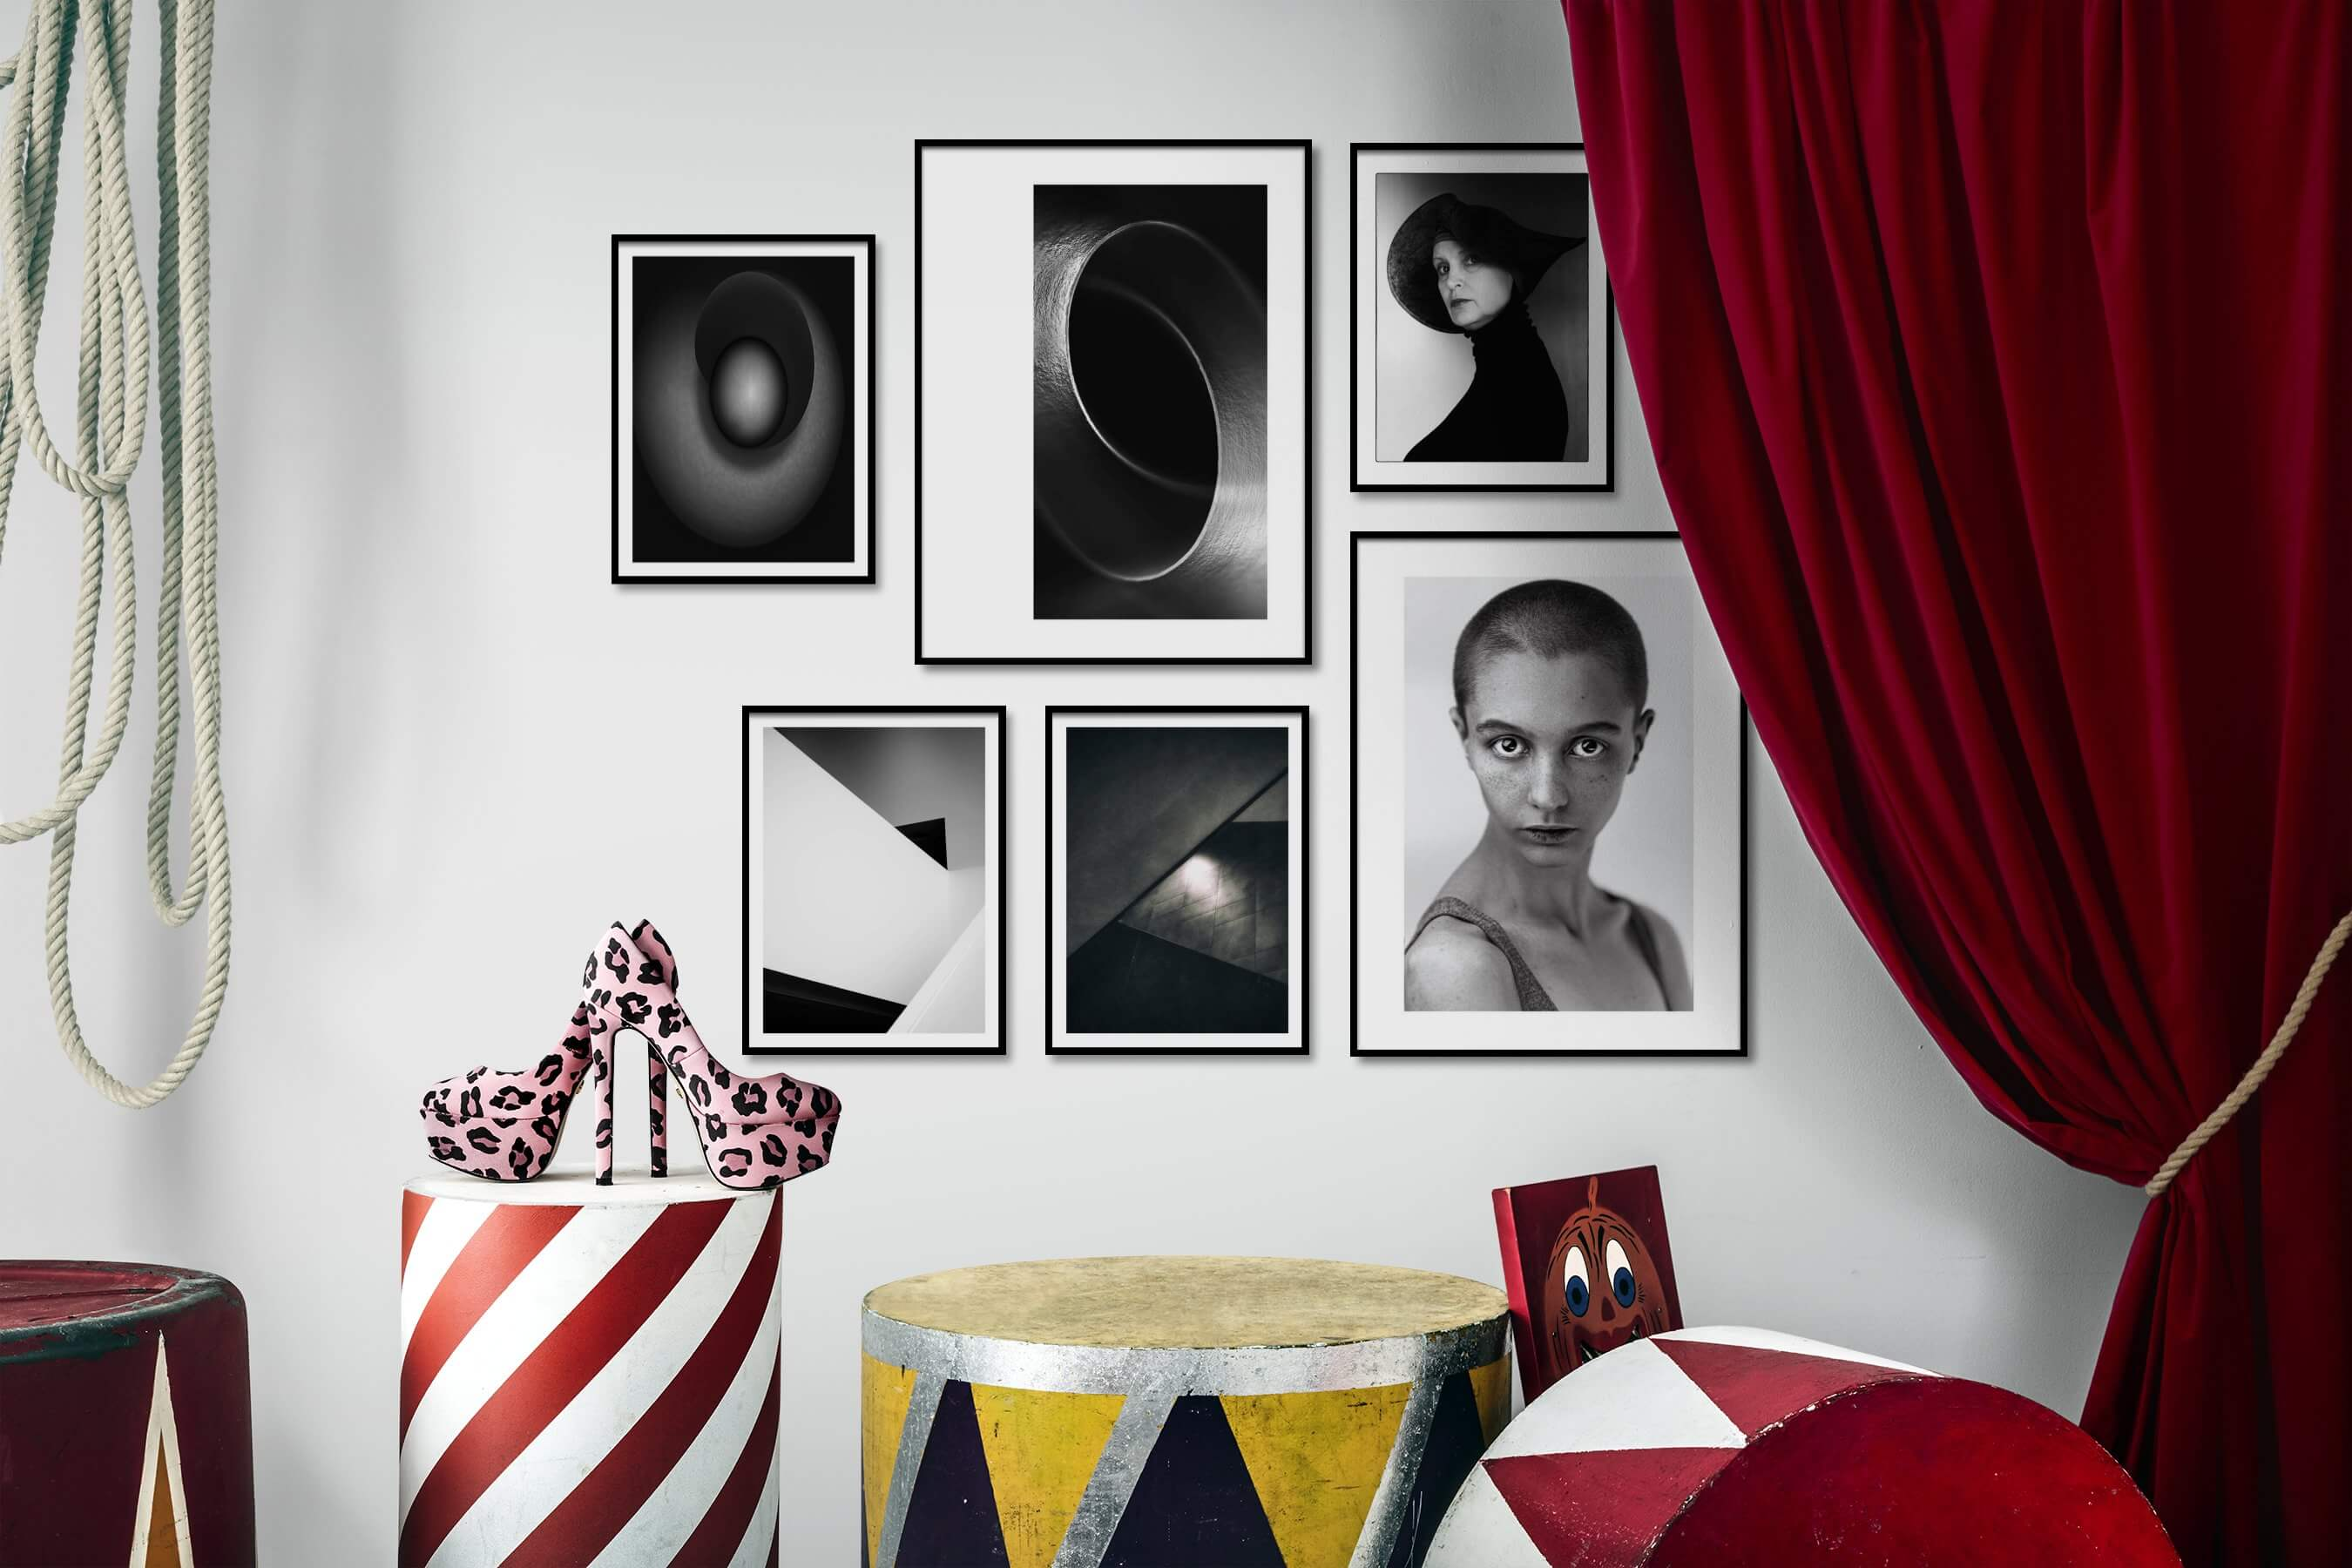 Gallery wall idea with six framed pictures arranged on a wall depicting Black & White, For the Minimalist, For the Moderate, and Fashion & Beauty